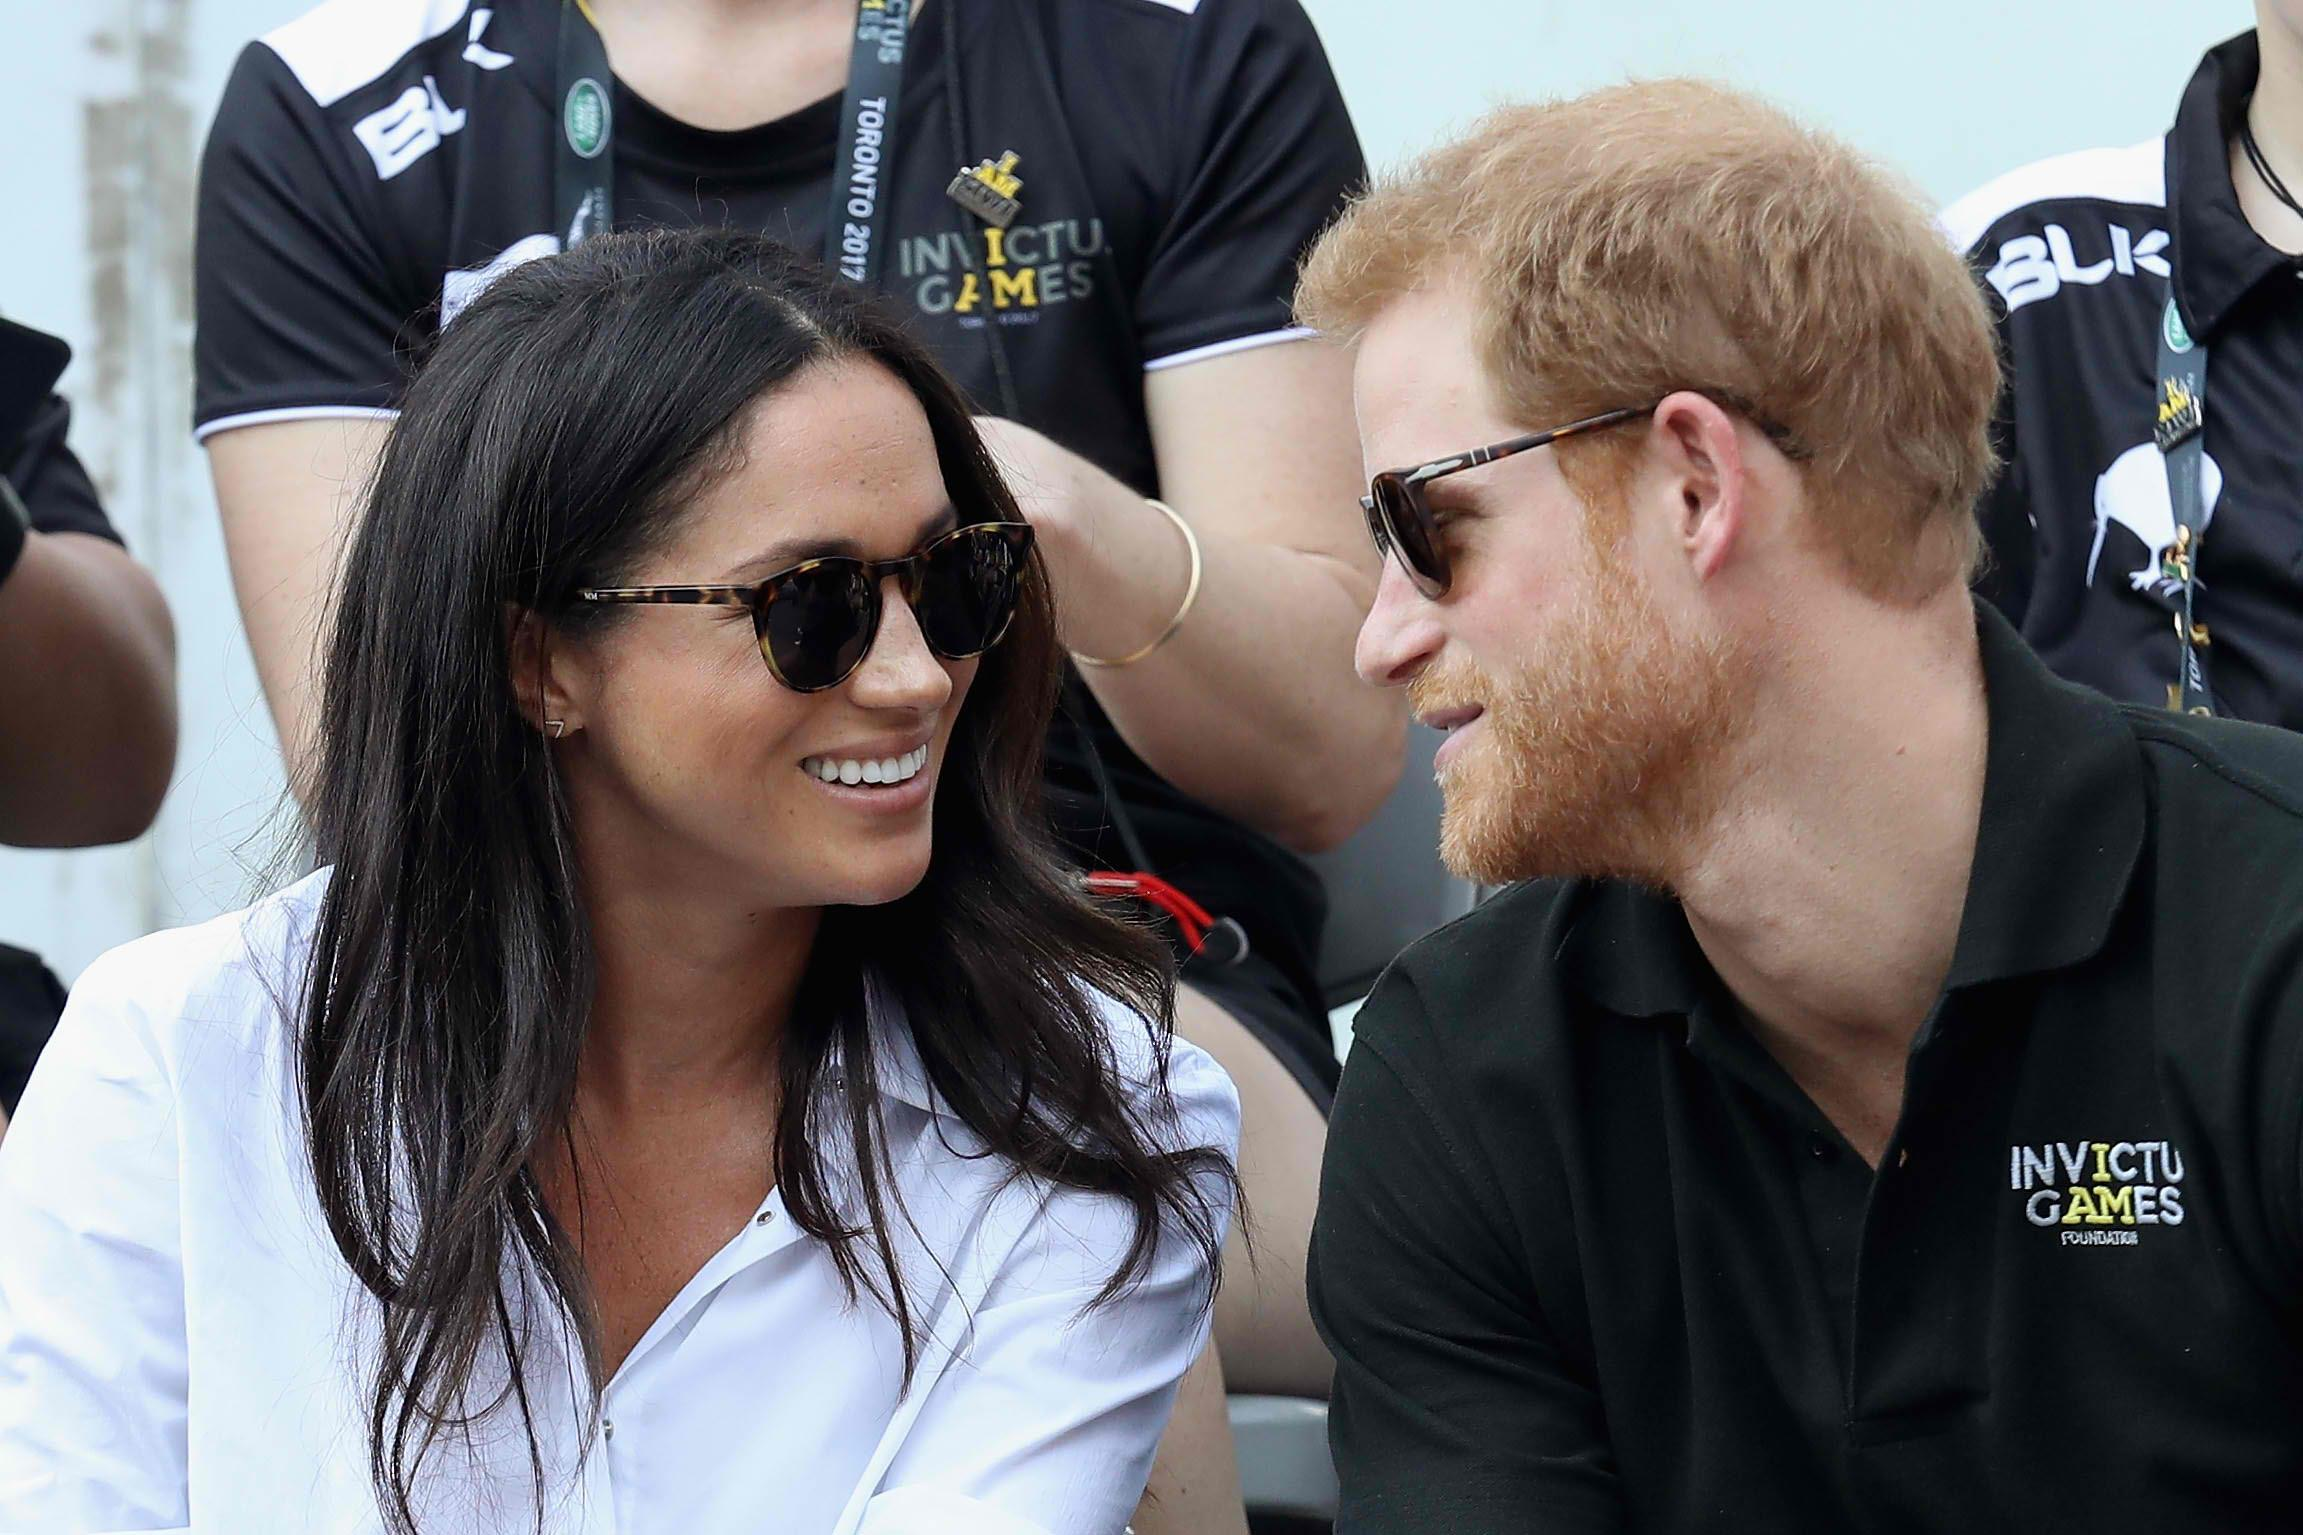 Prince Harry and Meghan Markle engagement 'is imminent'